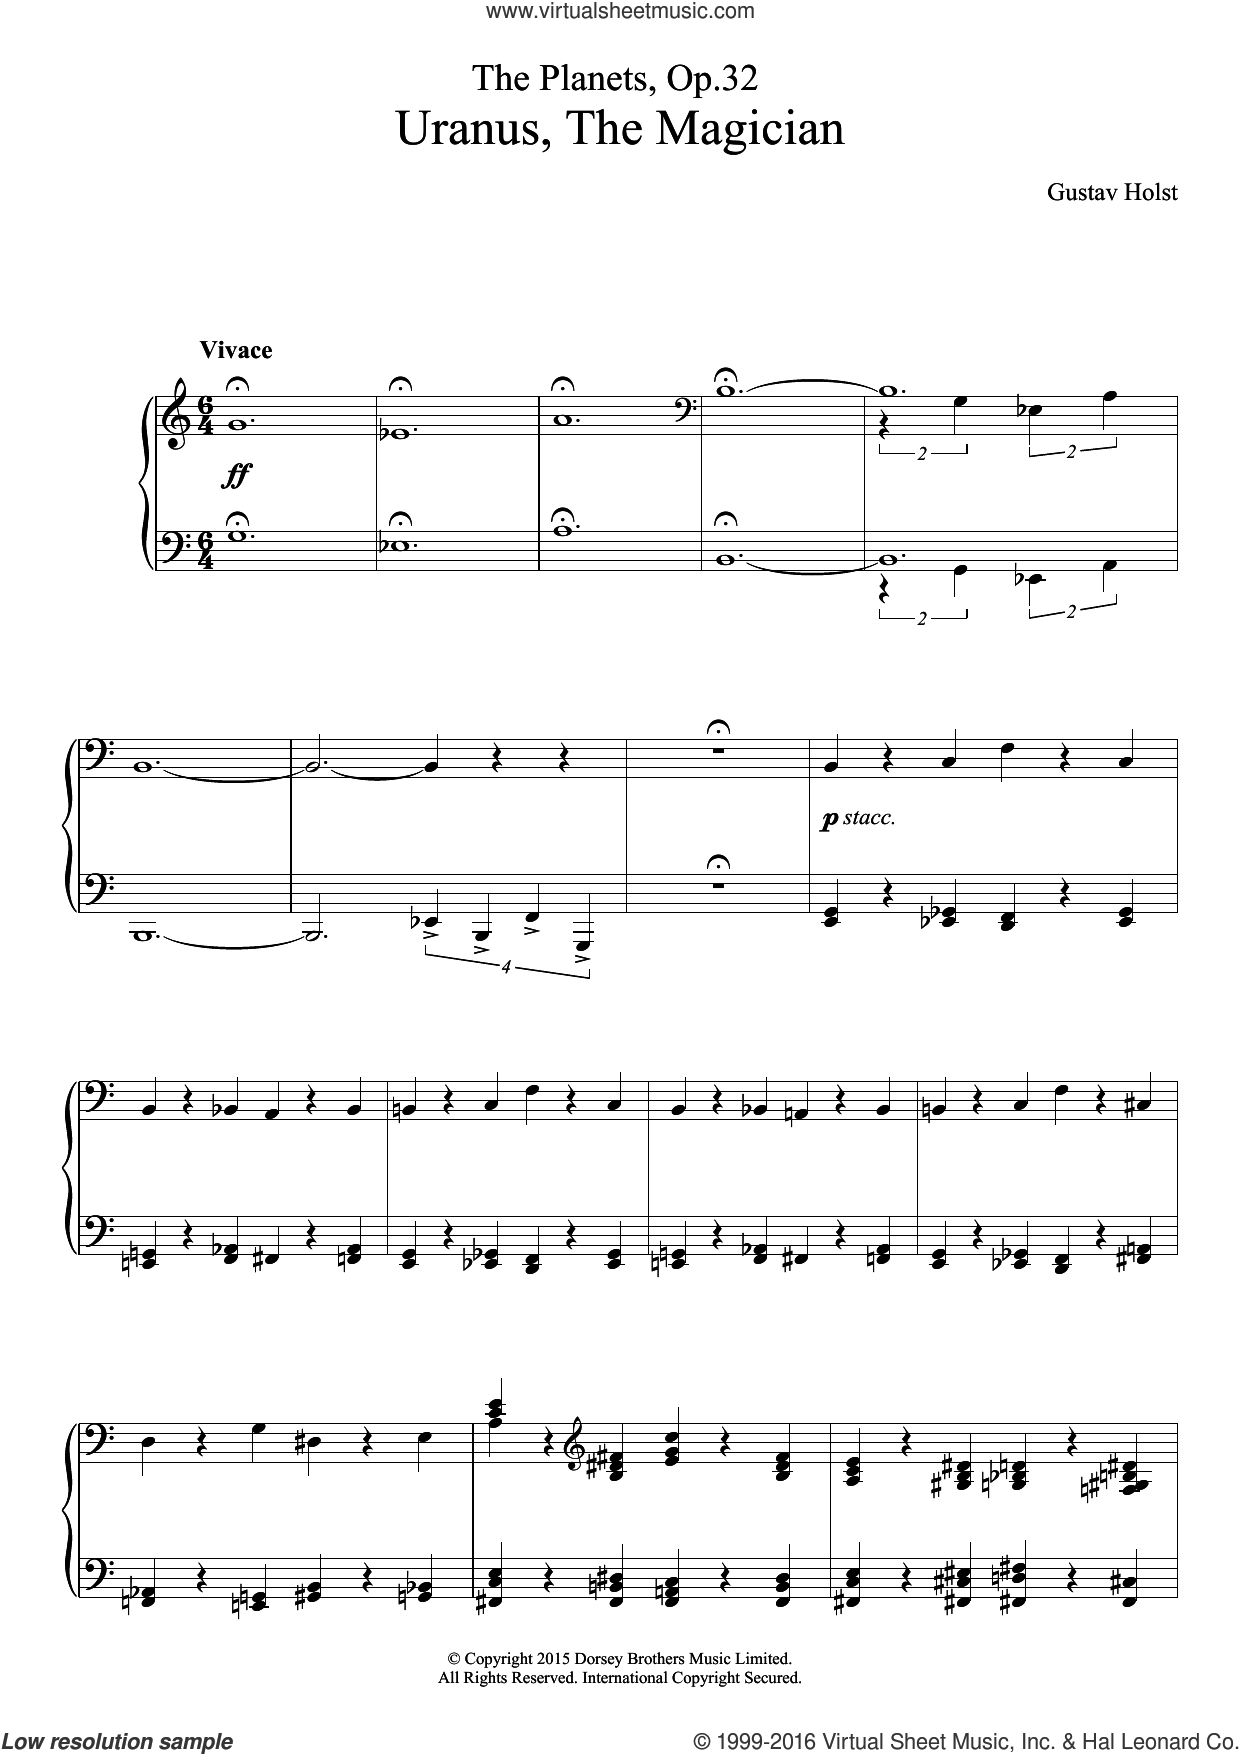 The Planets, Op. 32 - Uranus, The Magician sheet music for piano solo by Gustav Holst, classical score, intermediate skill level